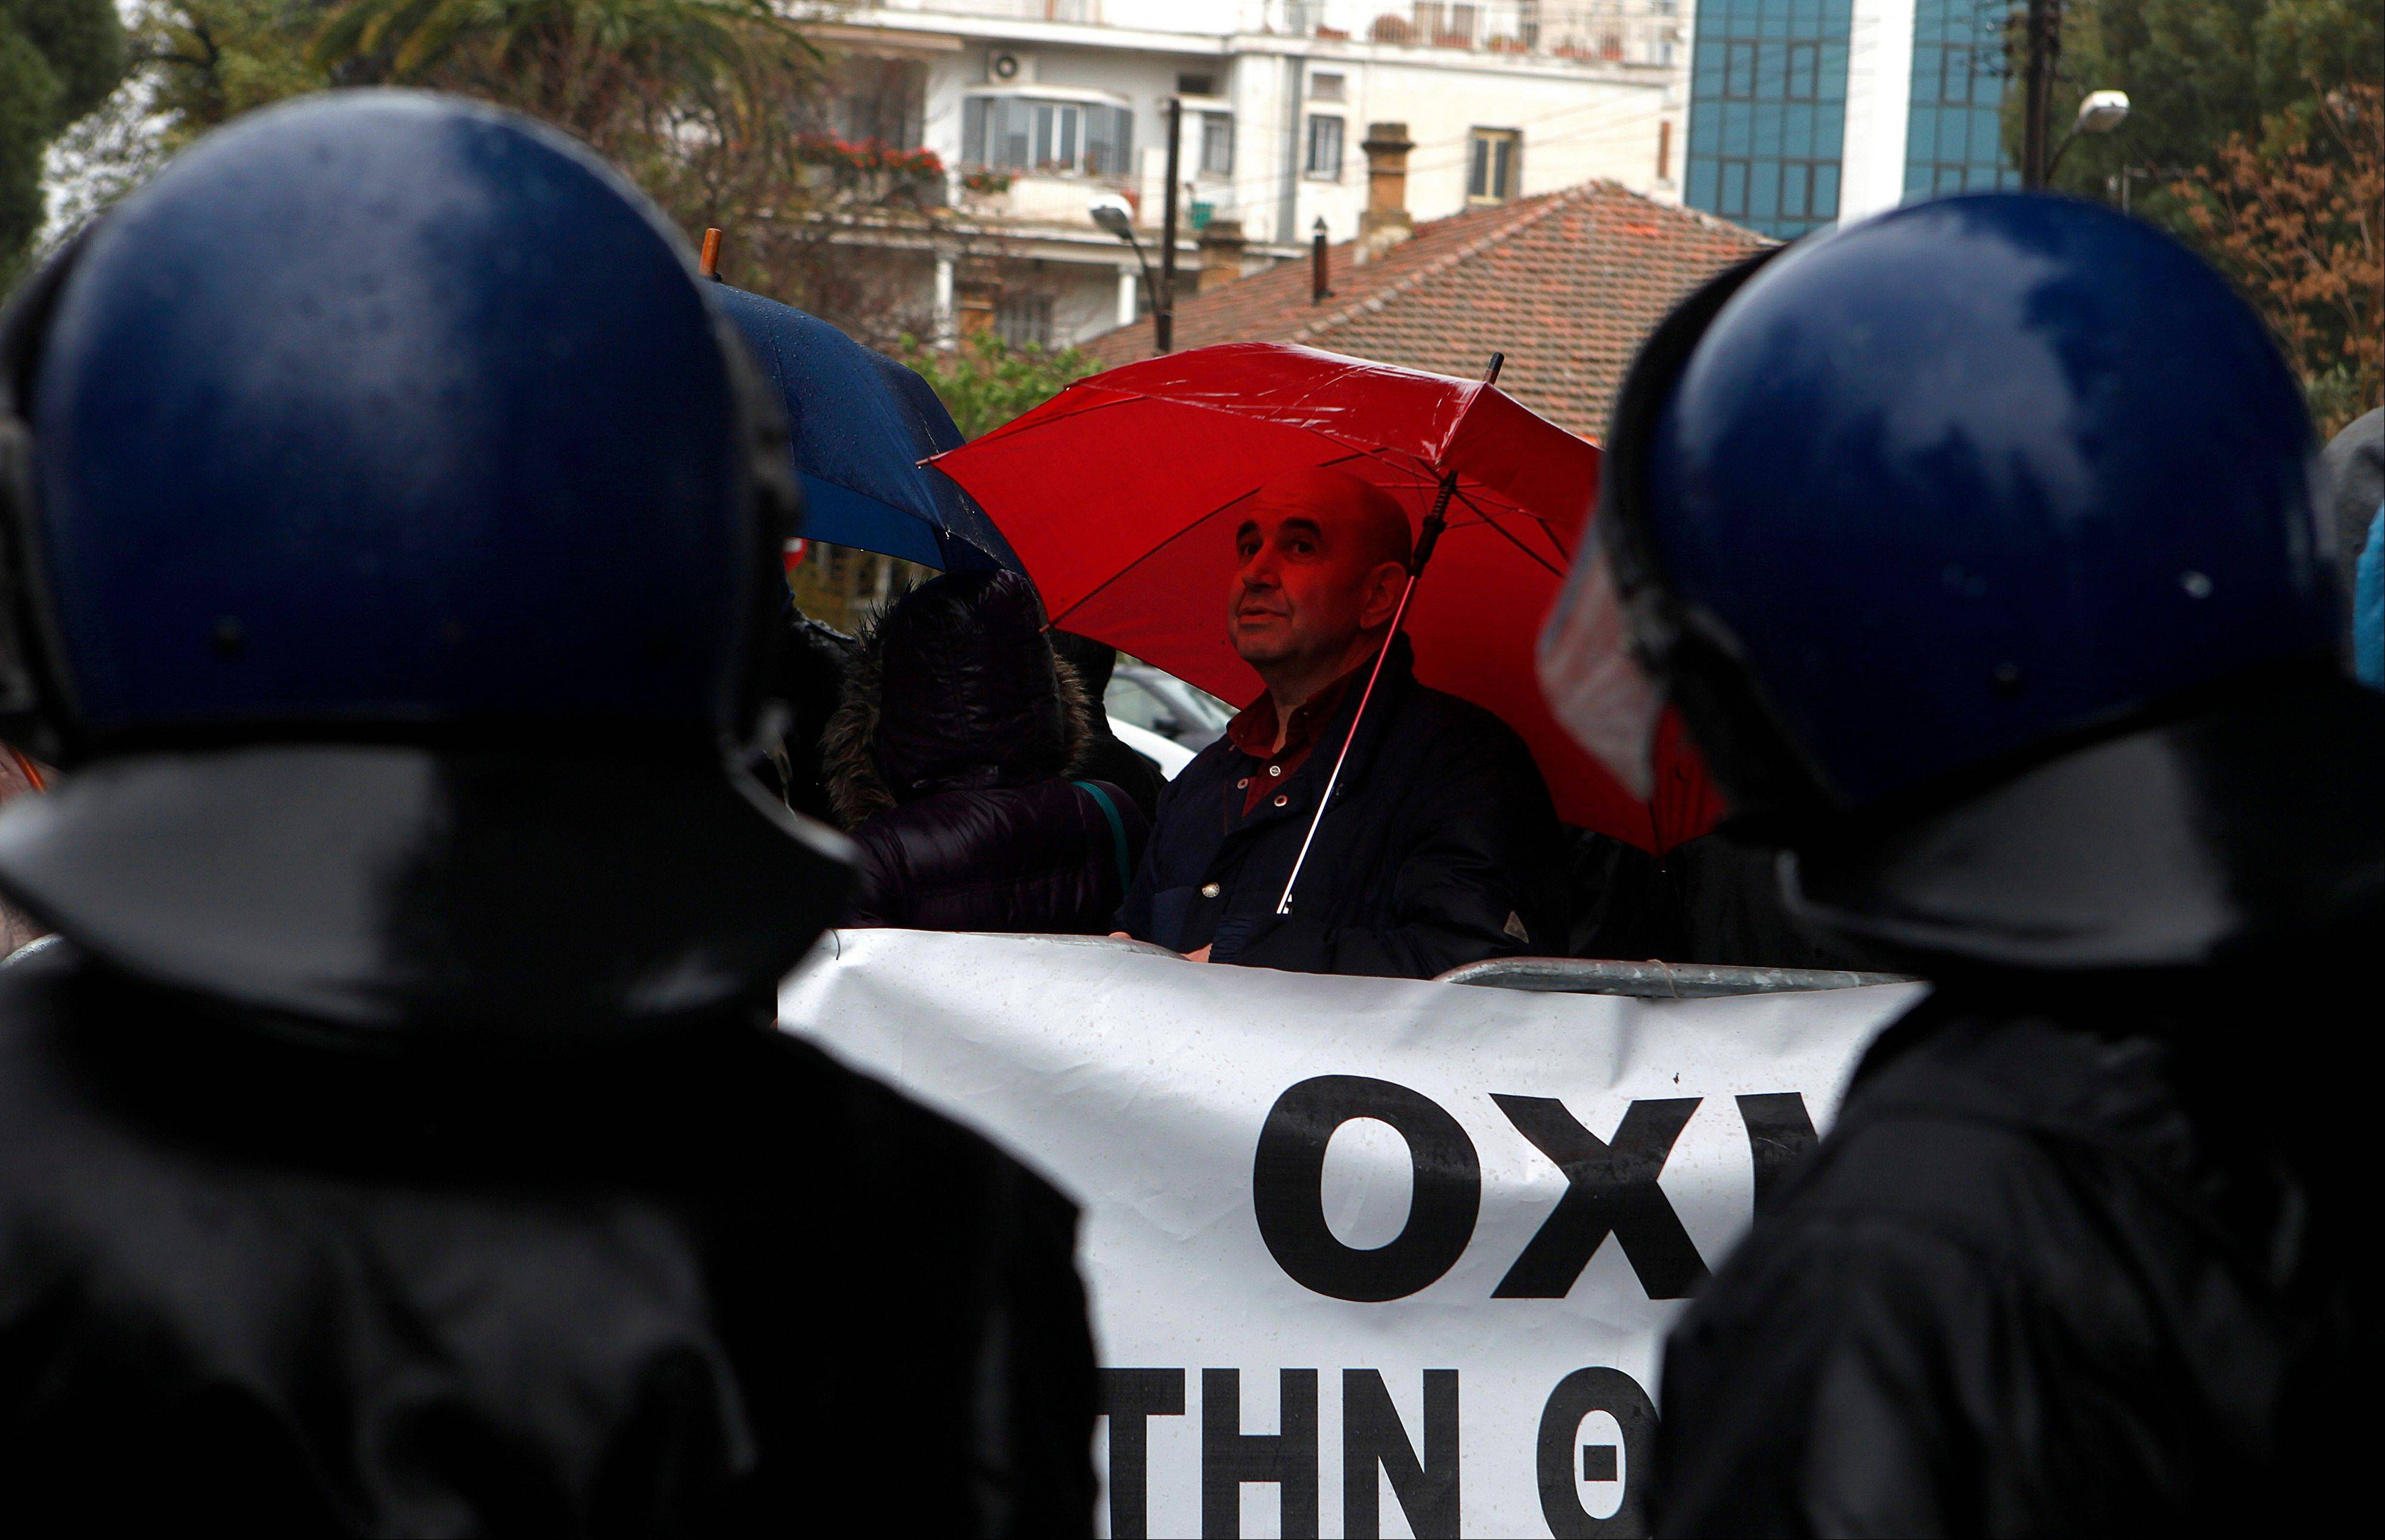 An employee of Laiki bank holding an umbrella is seen behind riot police during a rally outside of the parliament in capital Nicosia, Cyprus, Friday, March 22, 2013. Cypriot authorities were putting the final touches Friday to a plan they hope will convince international lenders to provide the money the country urgently needs to avoid bankruptcy within days.